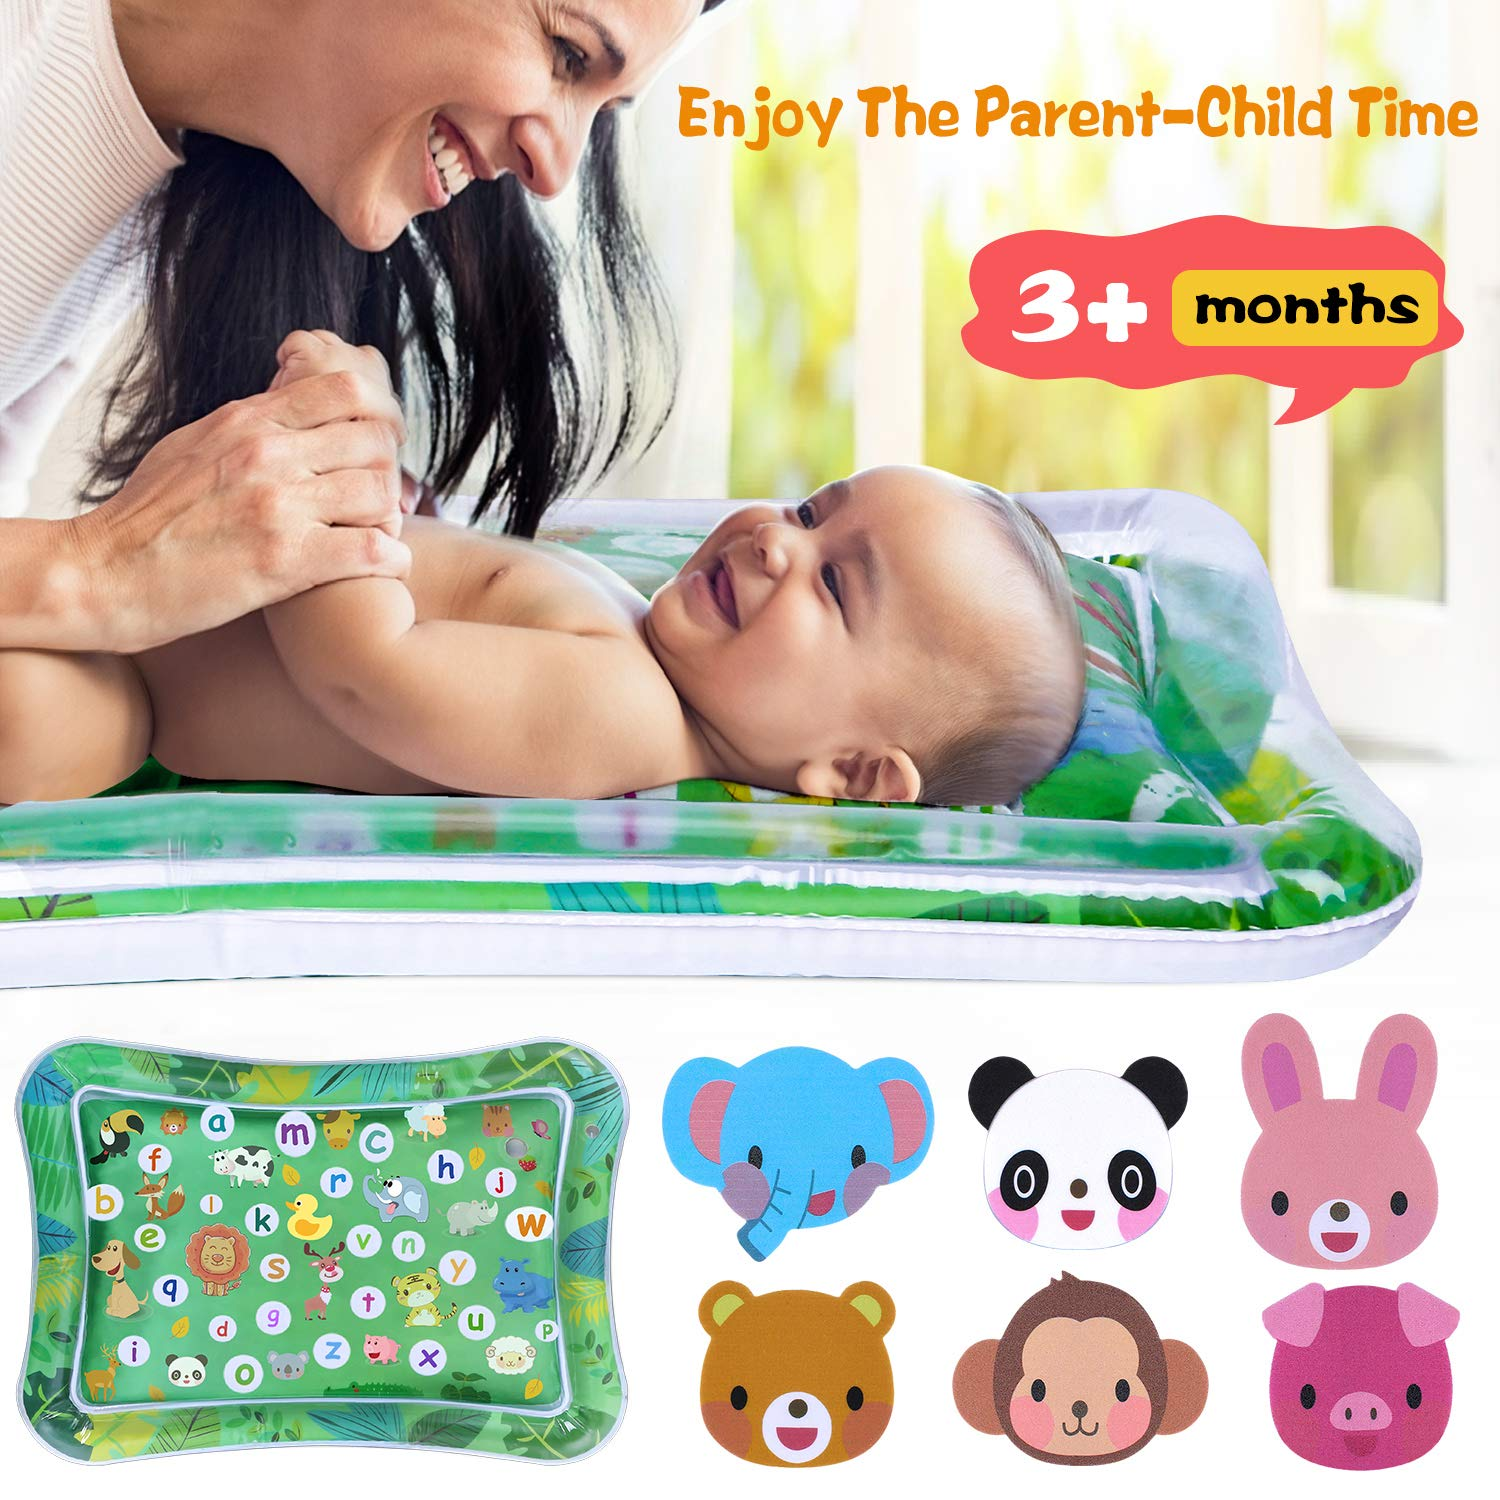 GINMIC Tummy Time Baby Water Play Mat Inflatable Water Play Mat Fun Activity Play Center for Infants Boy /& Girl Baby Newborn Playmat Toys for 3 6 9 12 Months Kids Indoor Climbers /& Play Toys